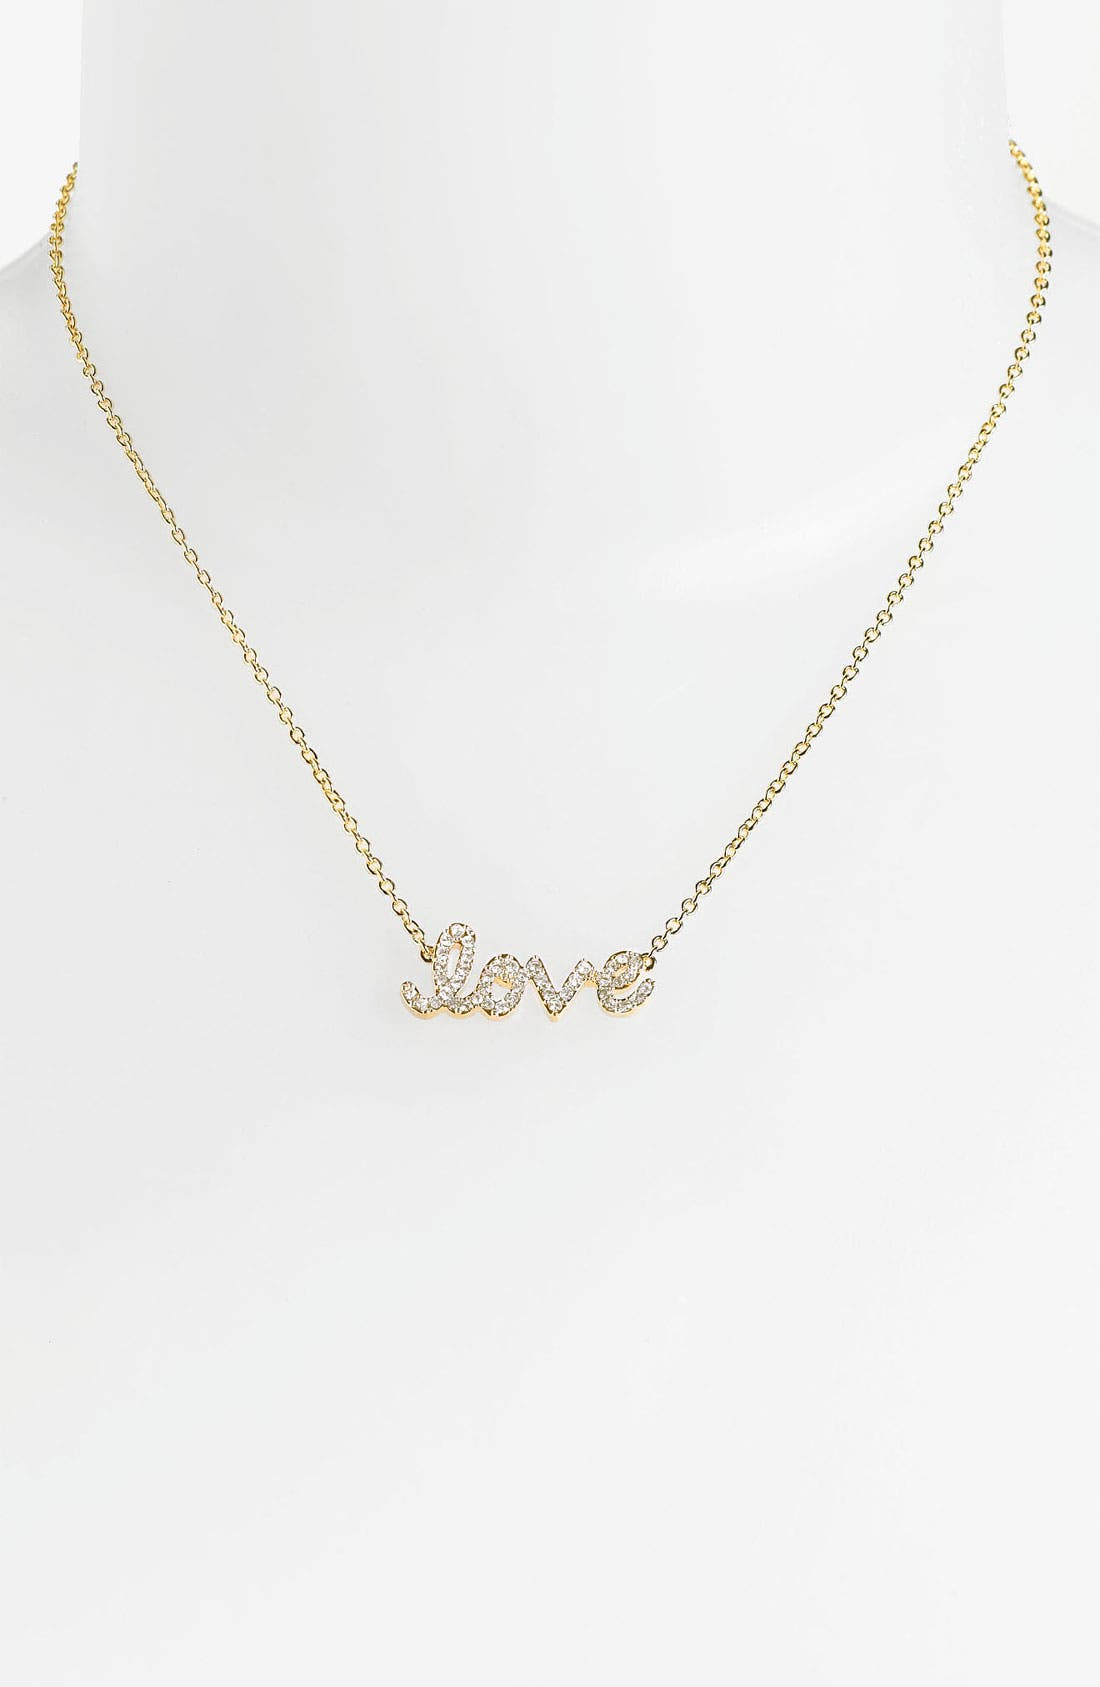 Main Image - Ariella Collection 'Messages - Love' Script Pendant Necklace